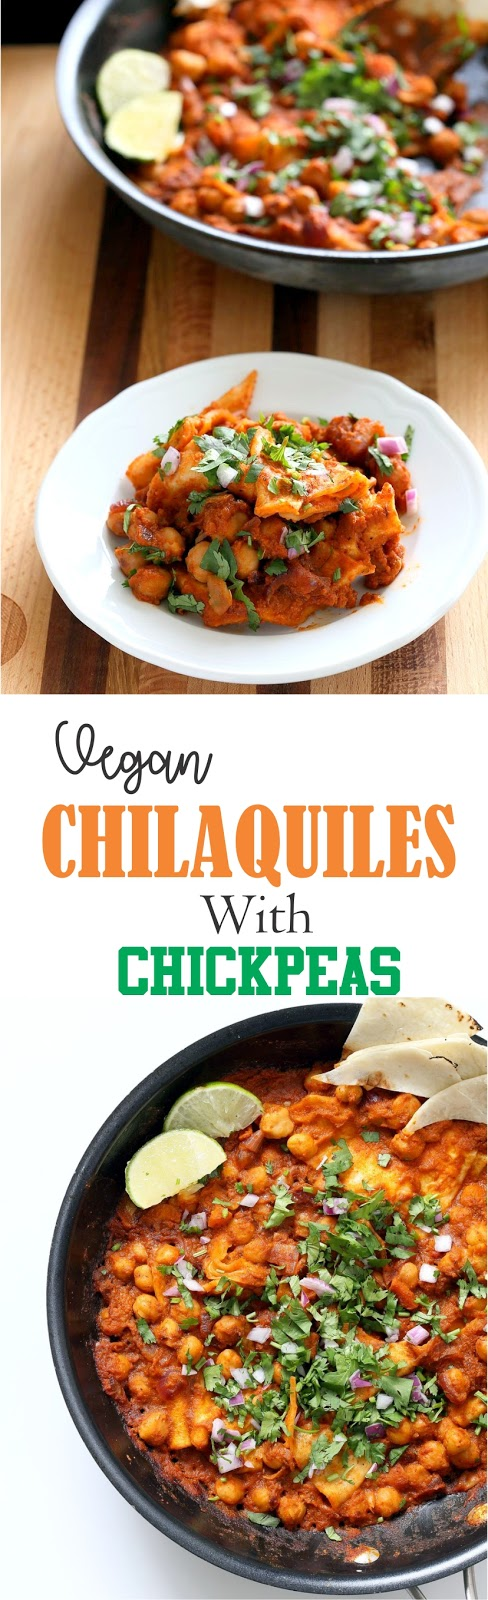 Vegan Chilaquiles with Chickpeas